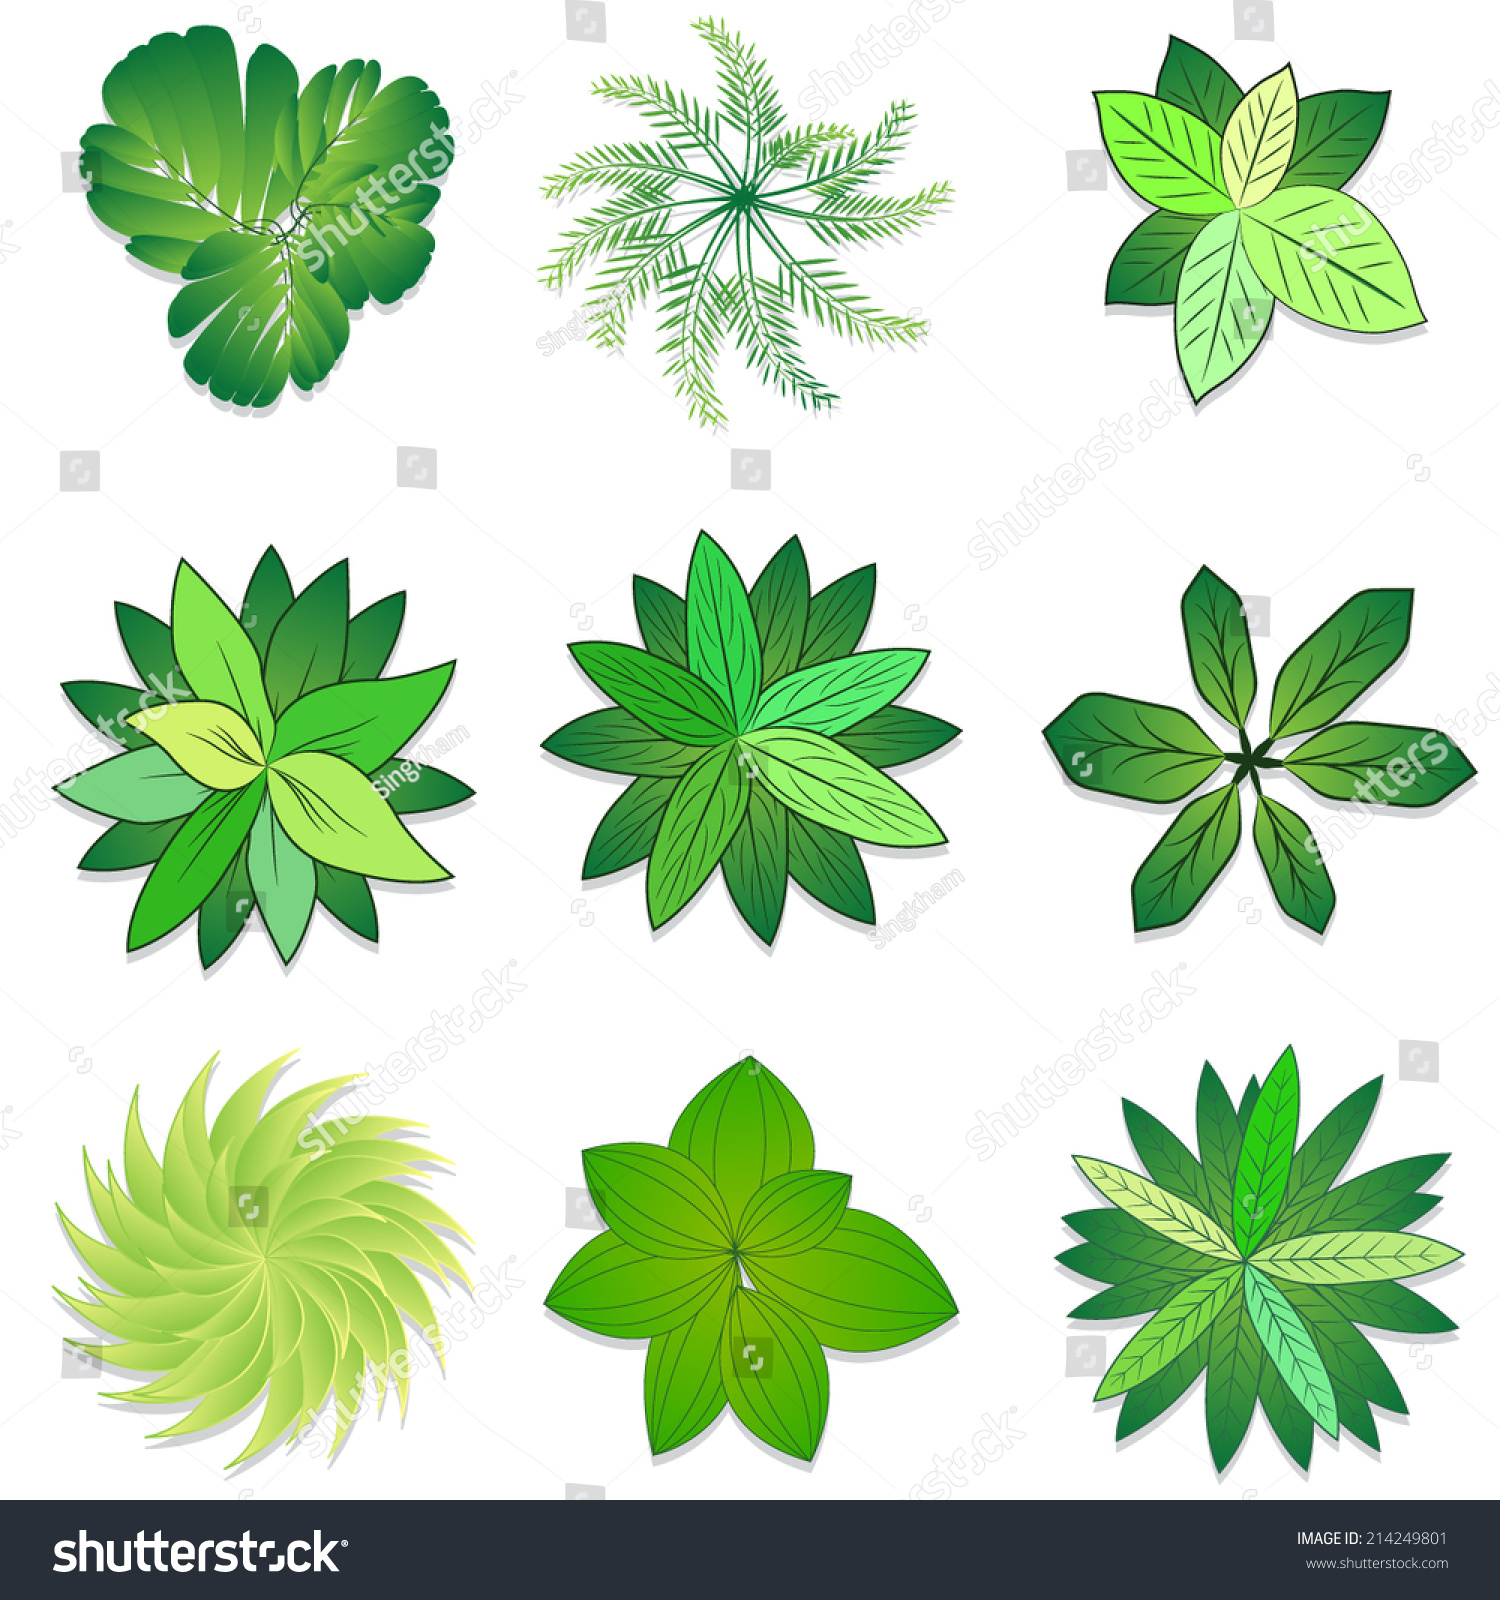 Trees Plant Flower Item Top View Stock Vector 214249801 - Shutterstock for Plant Top View Vector  565ane